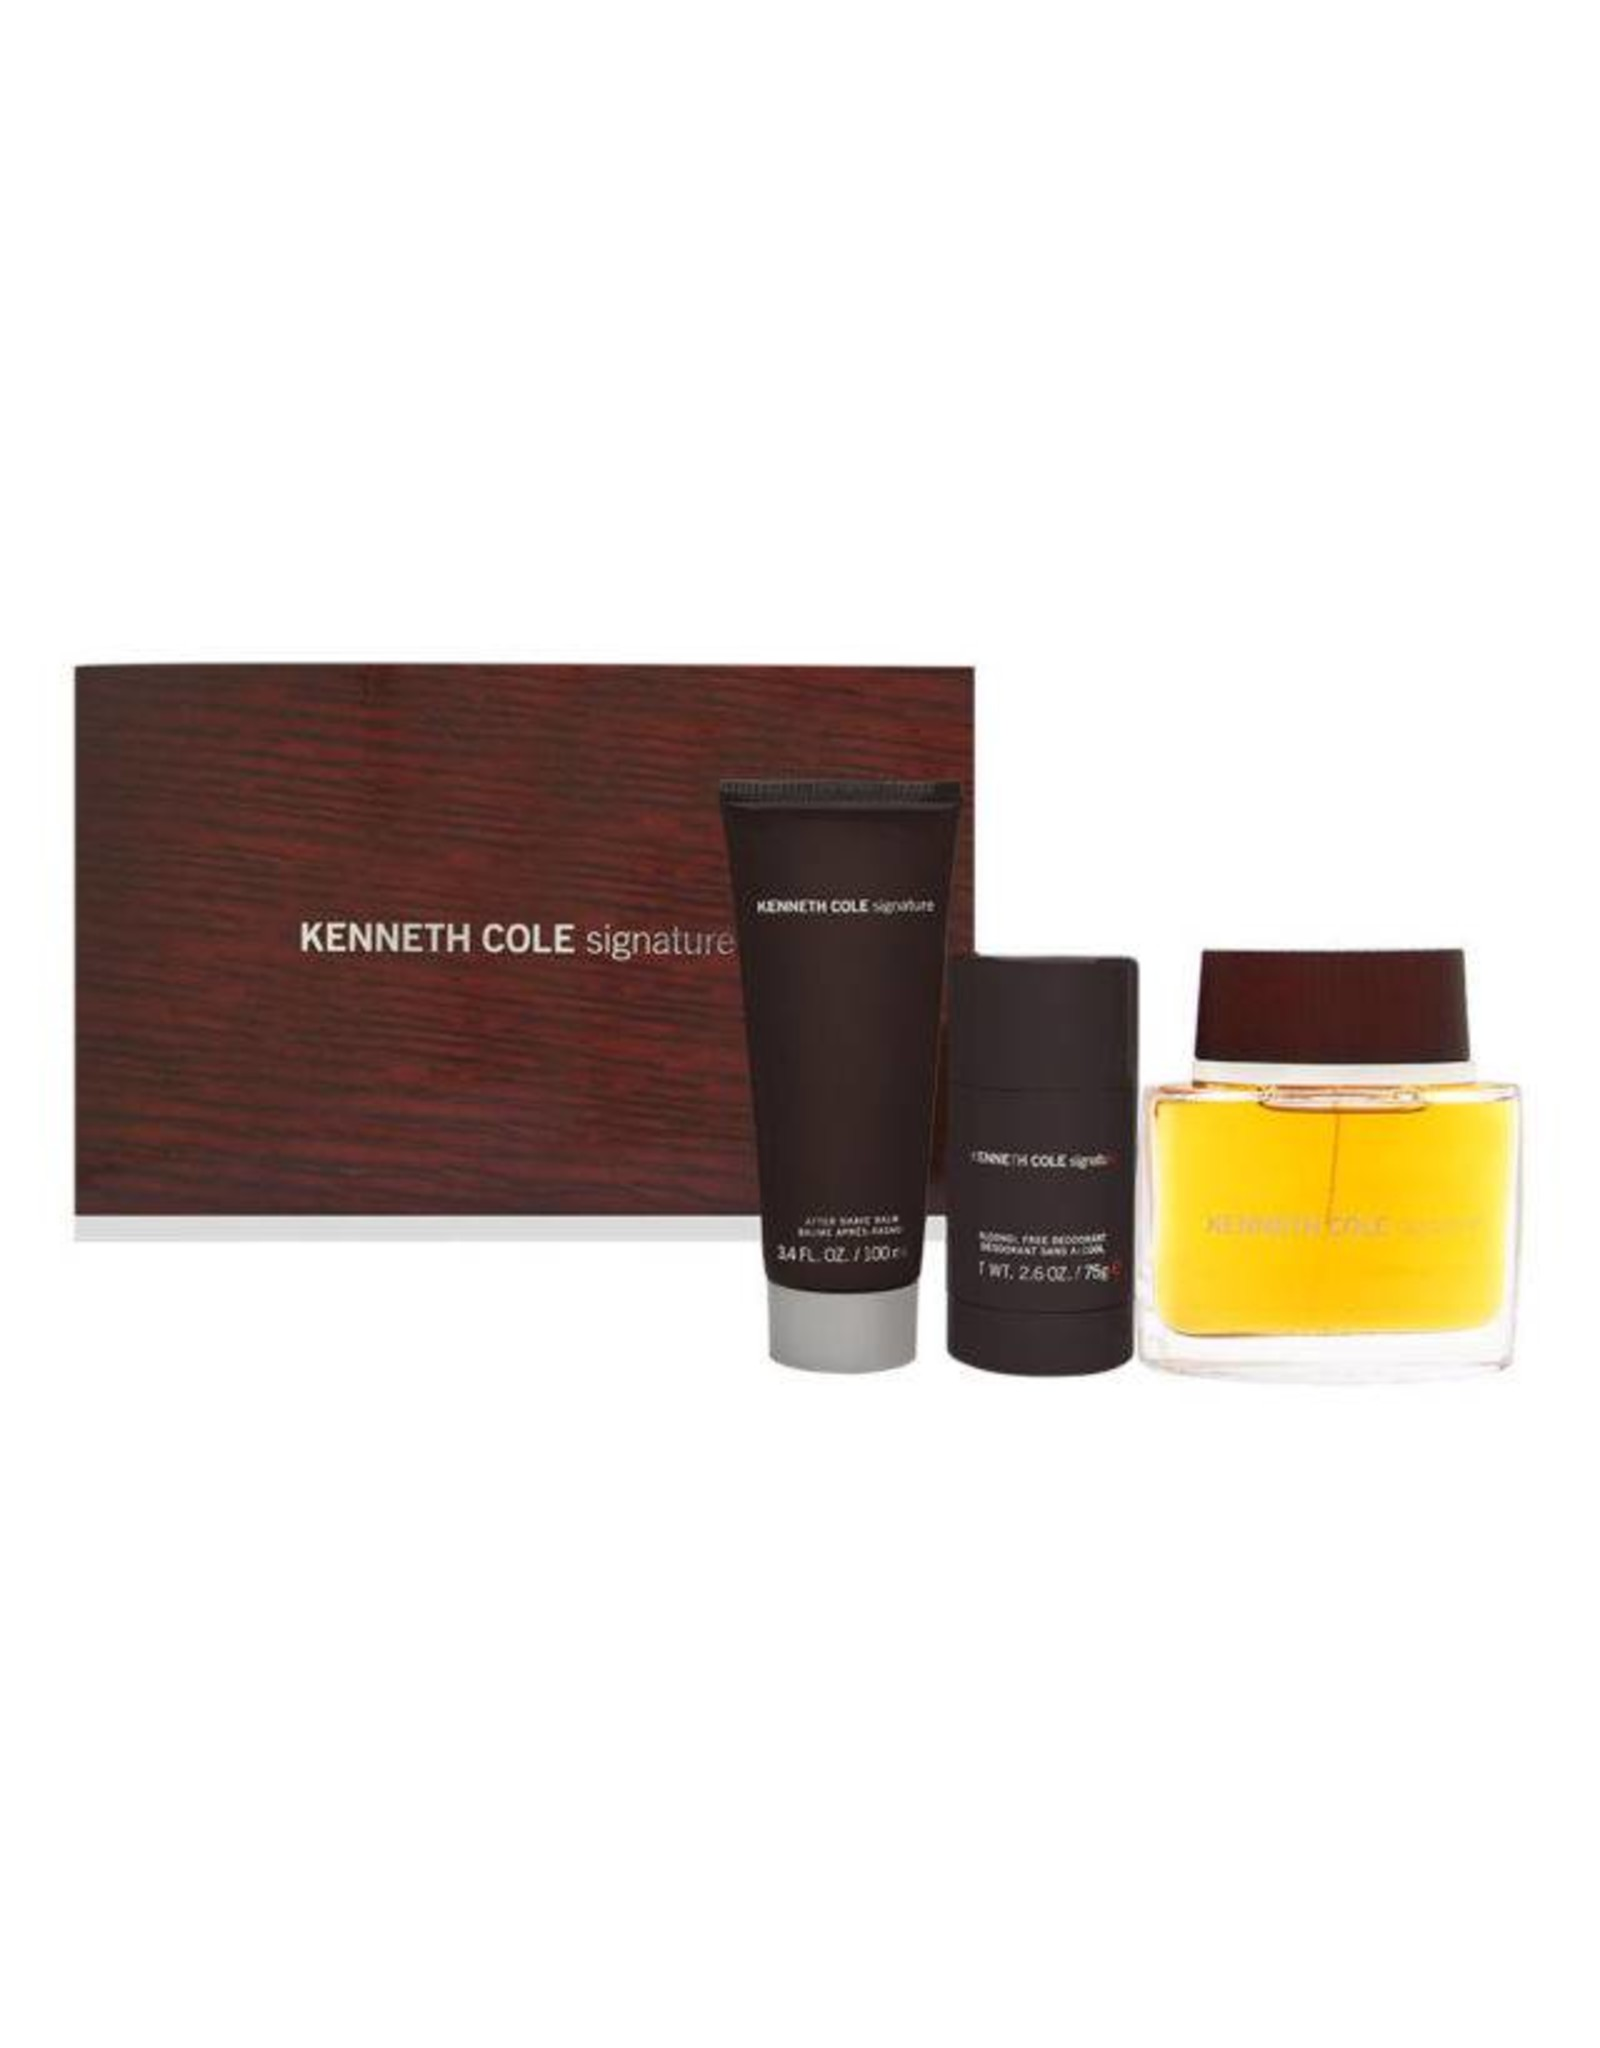 KENNETH COLE KENNETH COLE SIGNATURE 3pcs Set